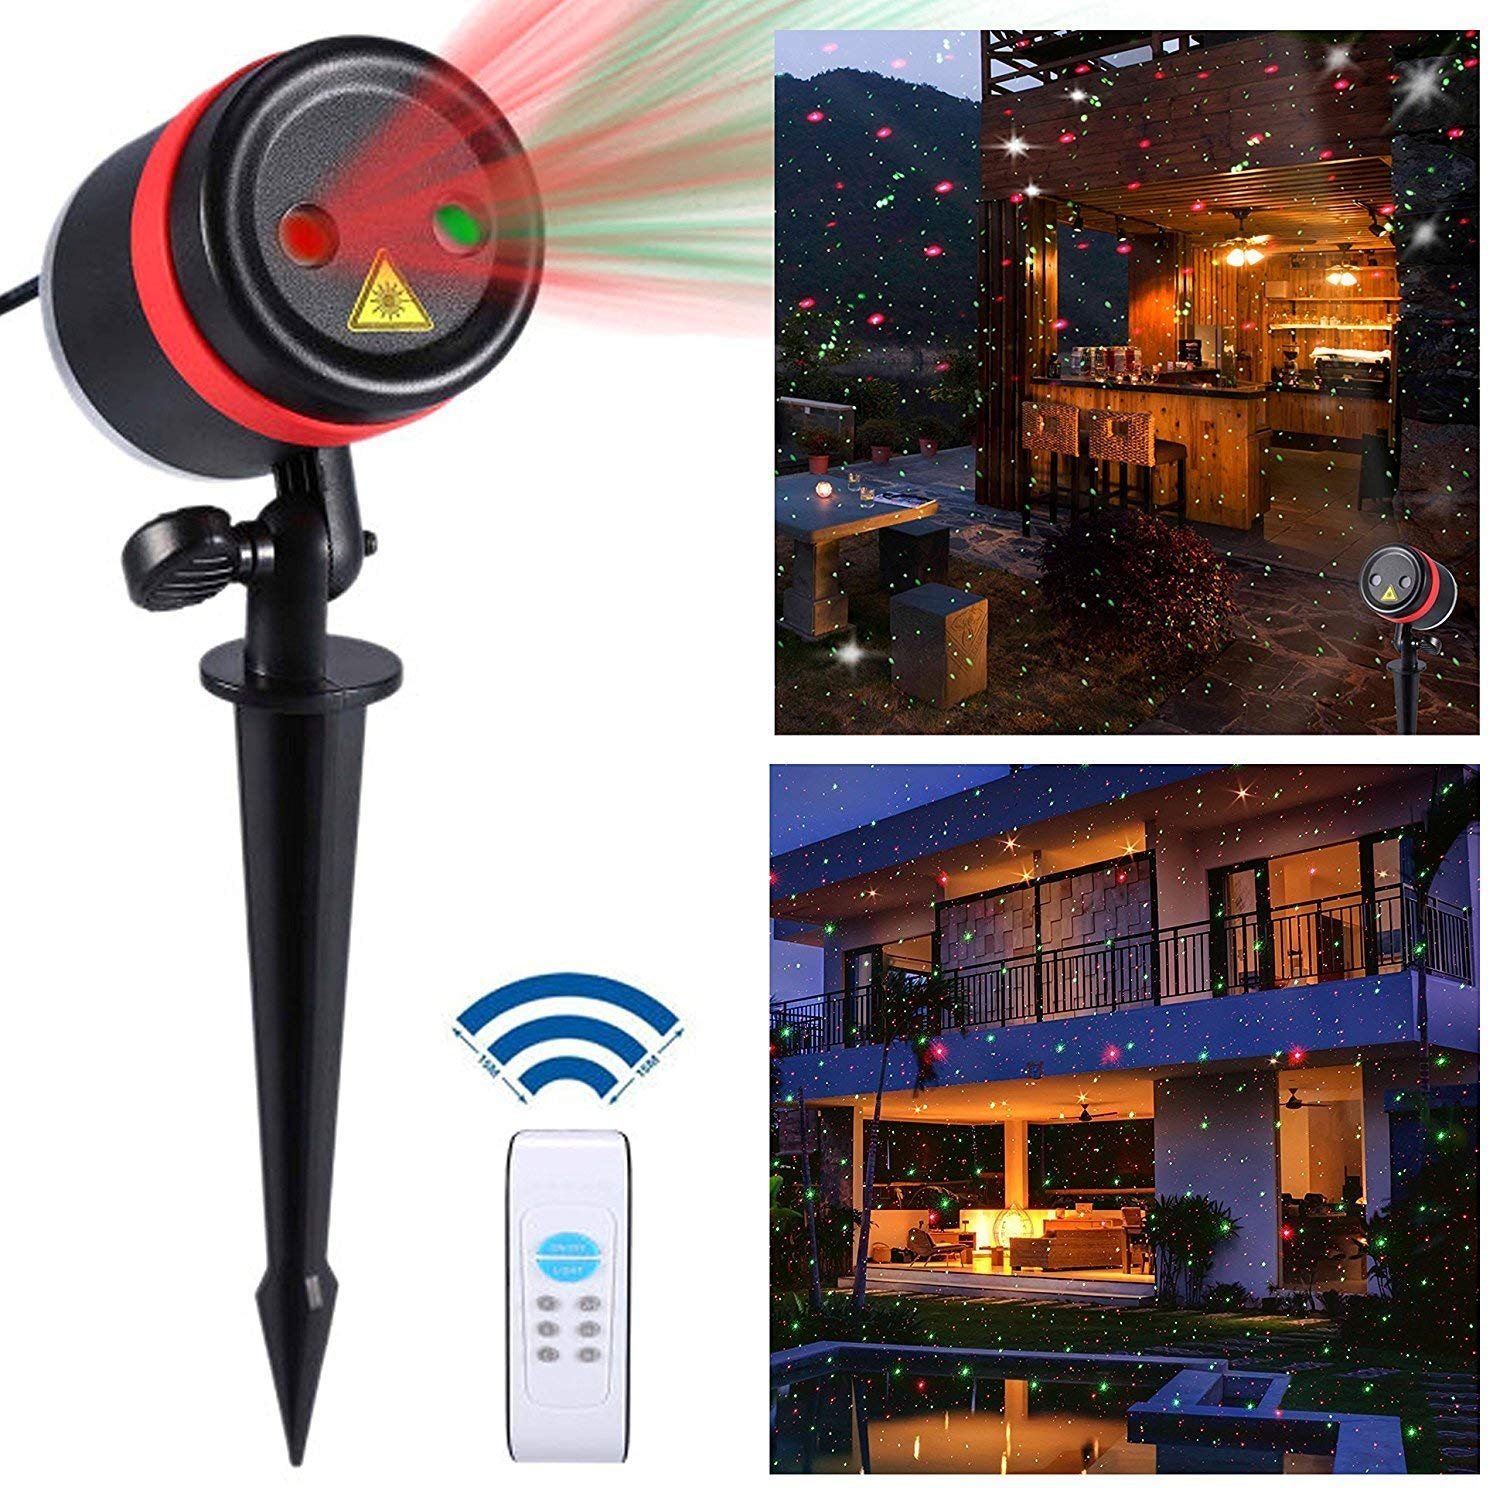 Lightess Christmas Laser Lights Projector Star Xmas Decorations Outdoor Indoor Holiday Landscape Lighting Red and Green Laser Light for Garden Party House Decor